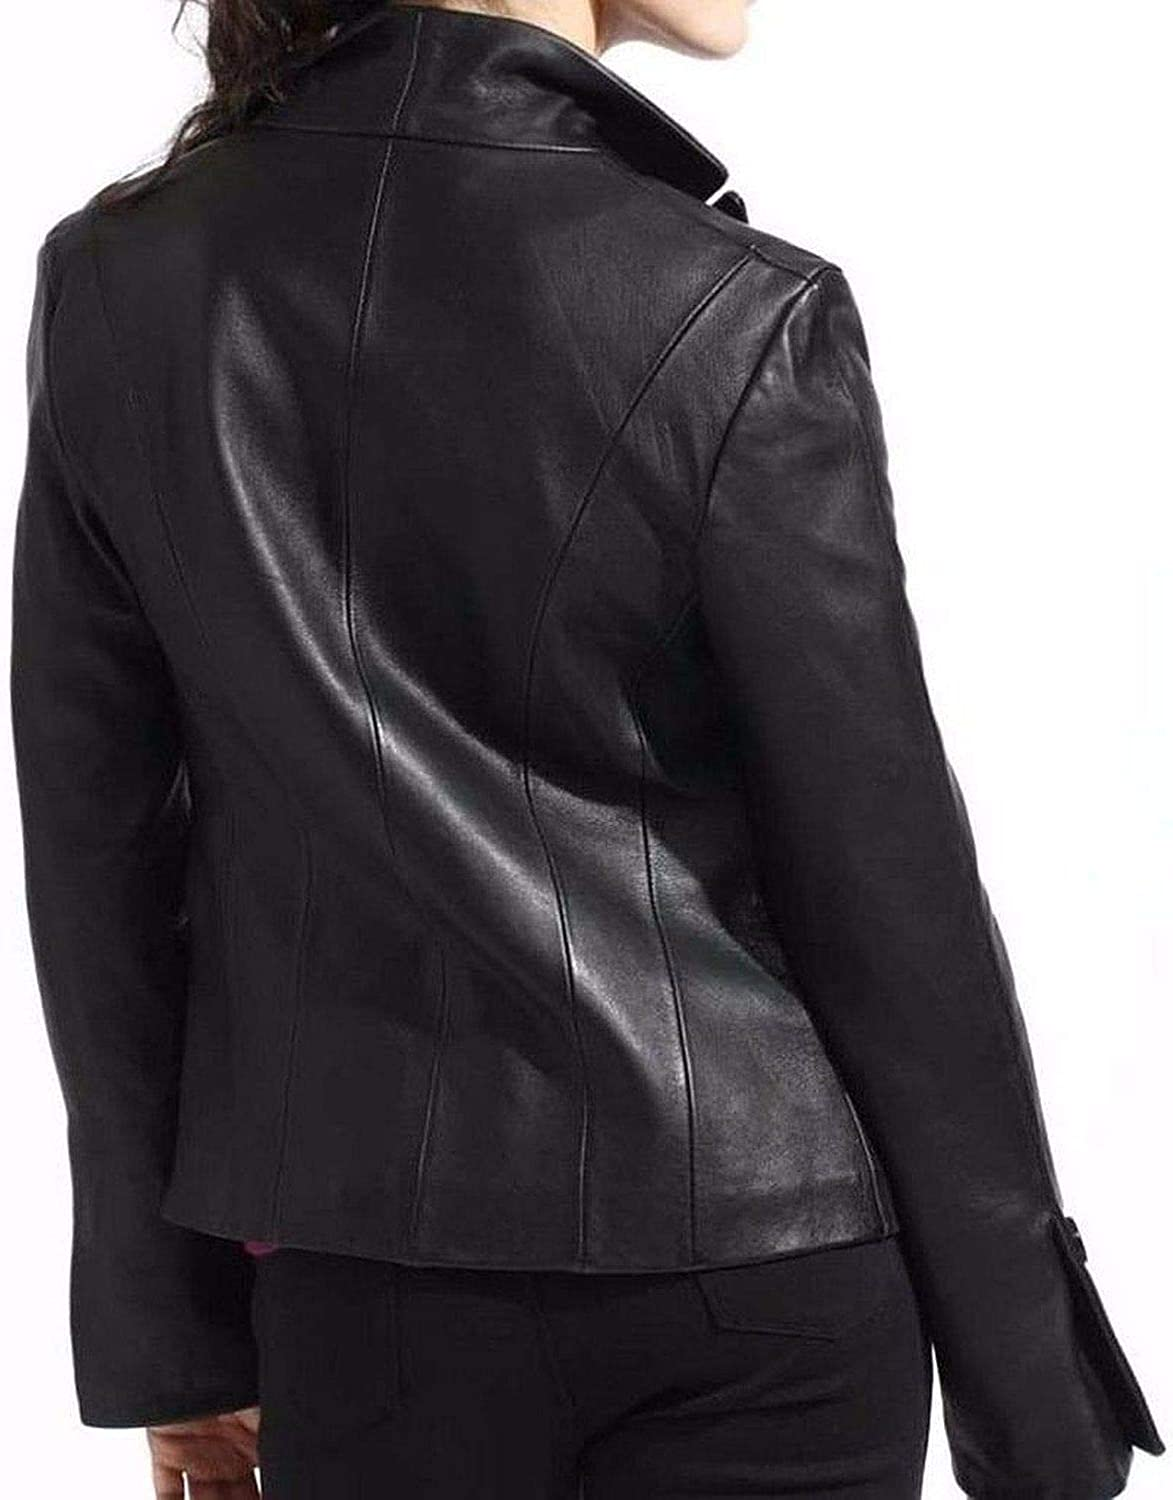 Pristine Leather Womens Real Lambskin Leather Black Blazer Coat Jacket WJ-027